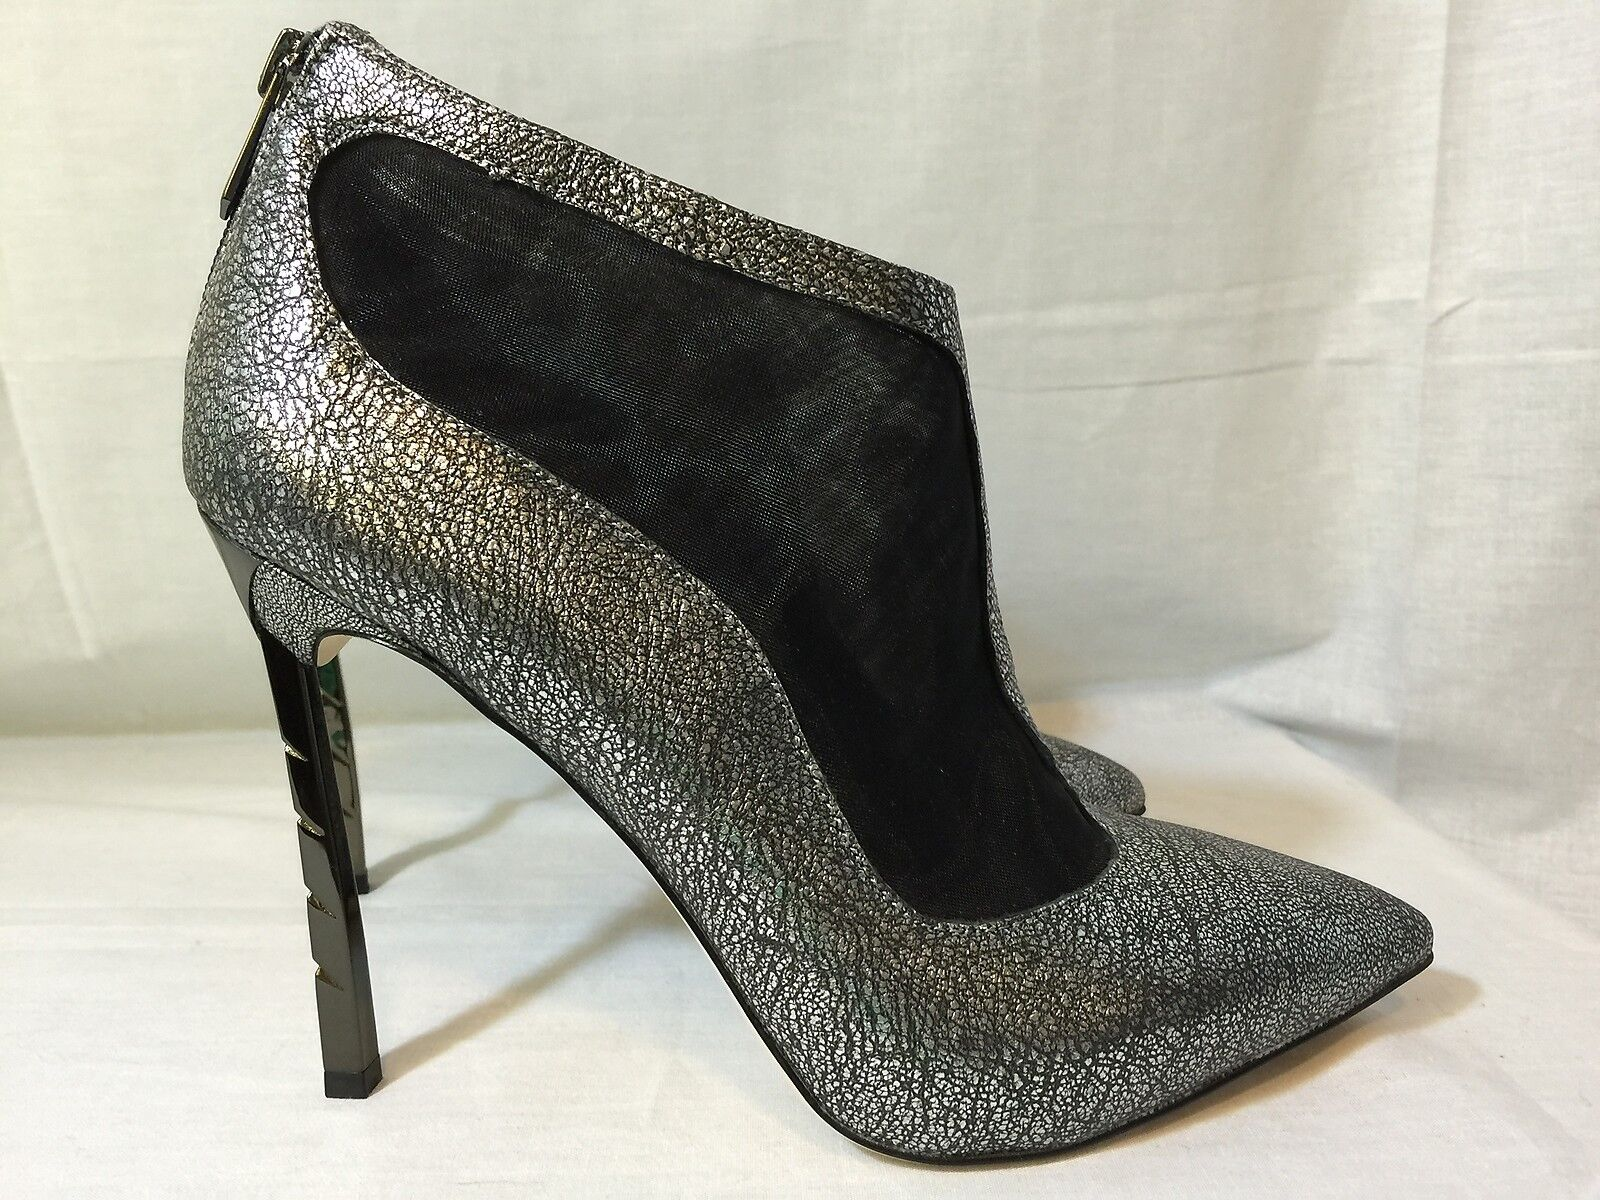 Sam Edelman Sterling argent argent Lea leather mesh ankle bottes stiletto chaussures